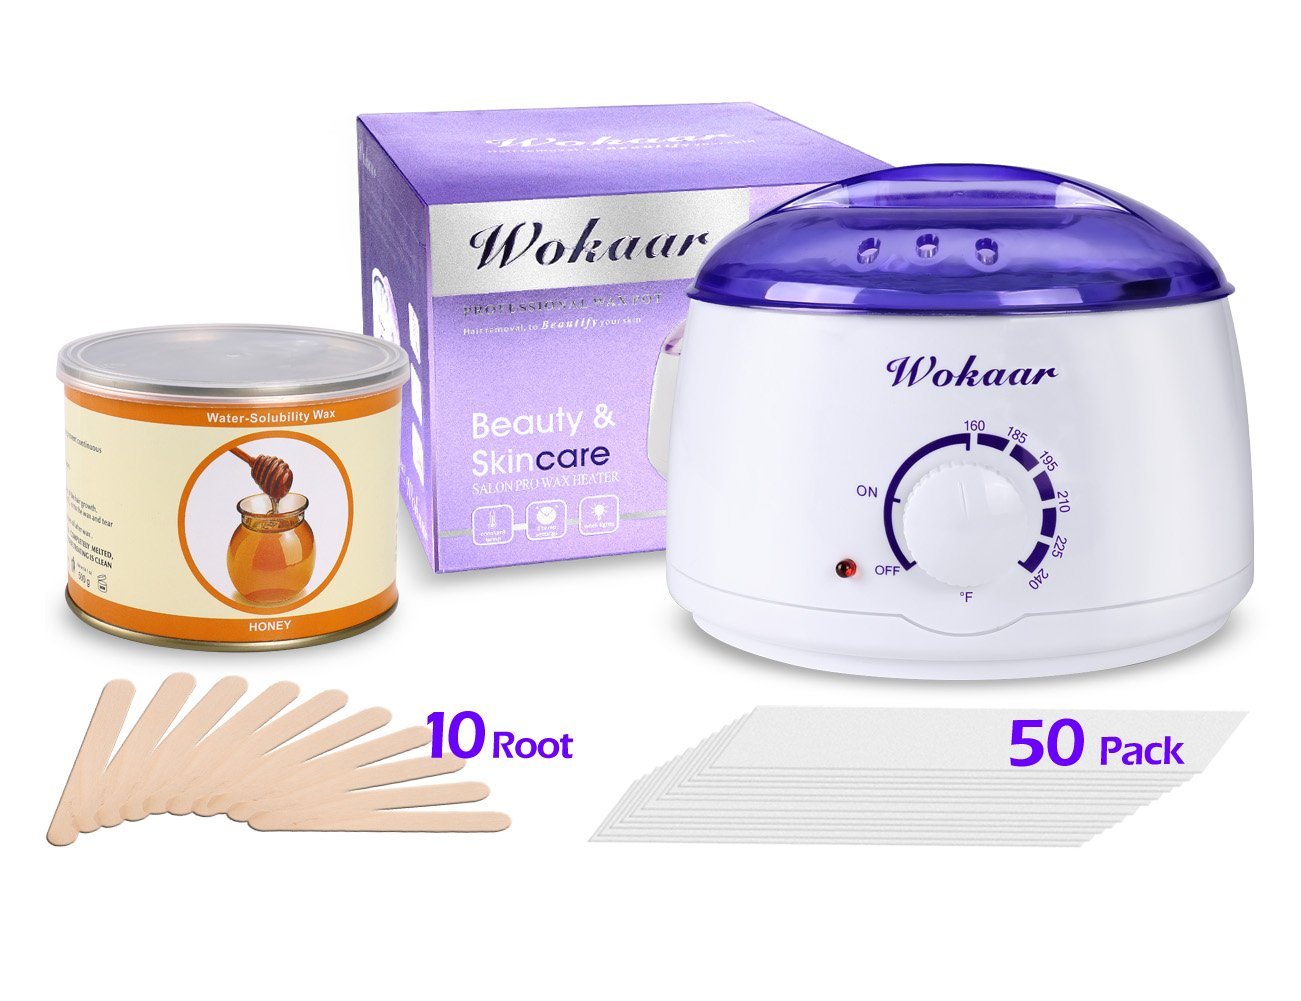 Wax Warmer Electric Heater Hair Removal Waxing Kit With Honey Wax +50 Depilatory Wax Strips Paper + 10 Wax Applicator Sticks